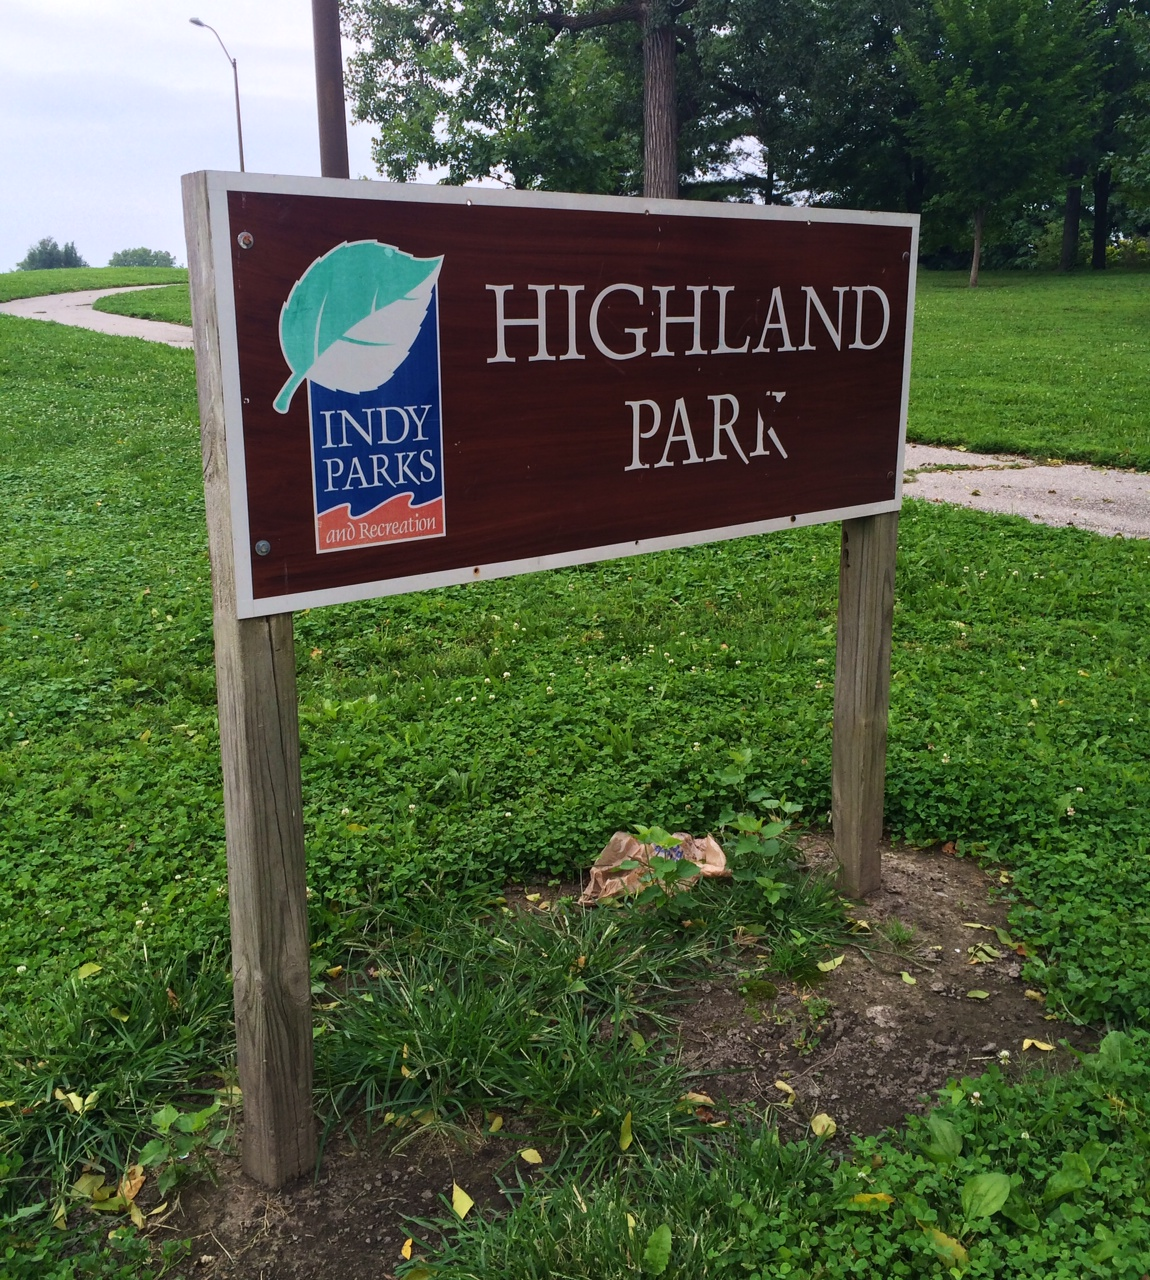 In the Park: Highland Park